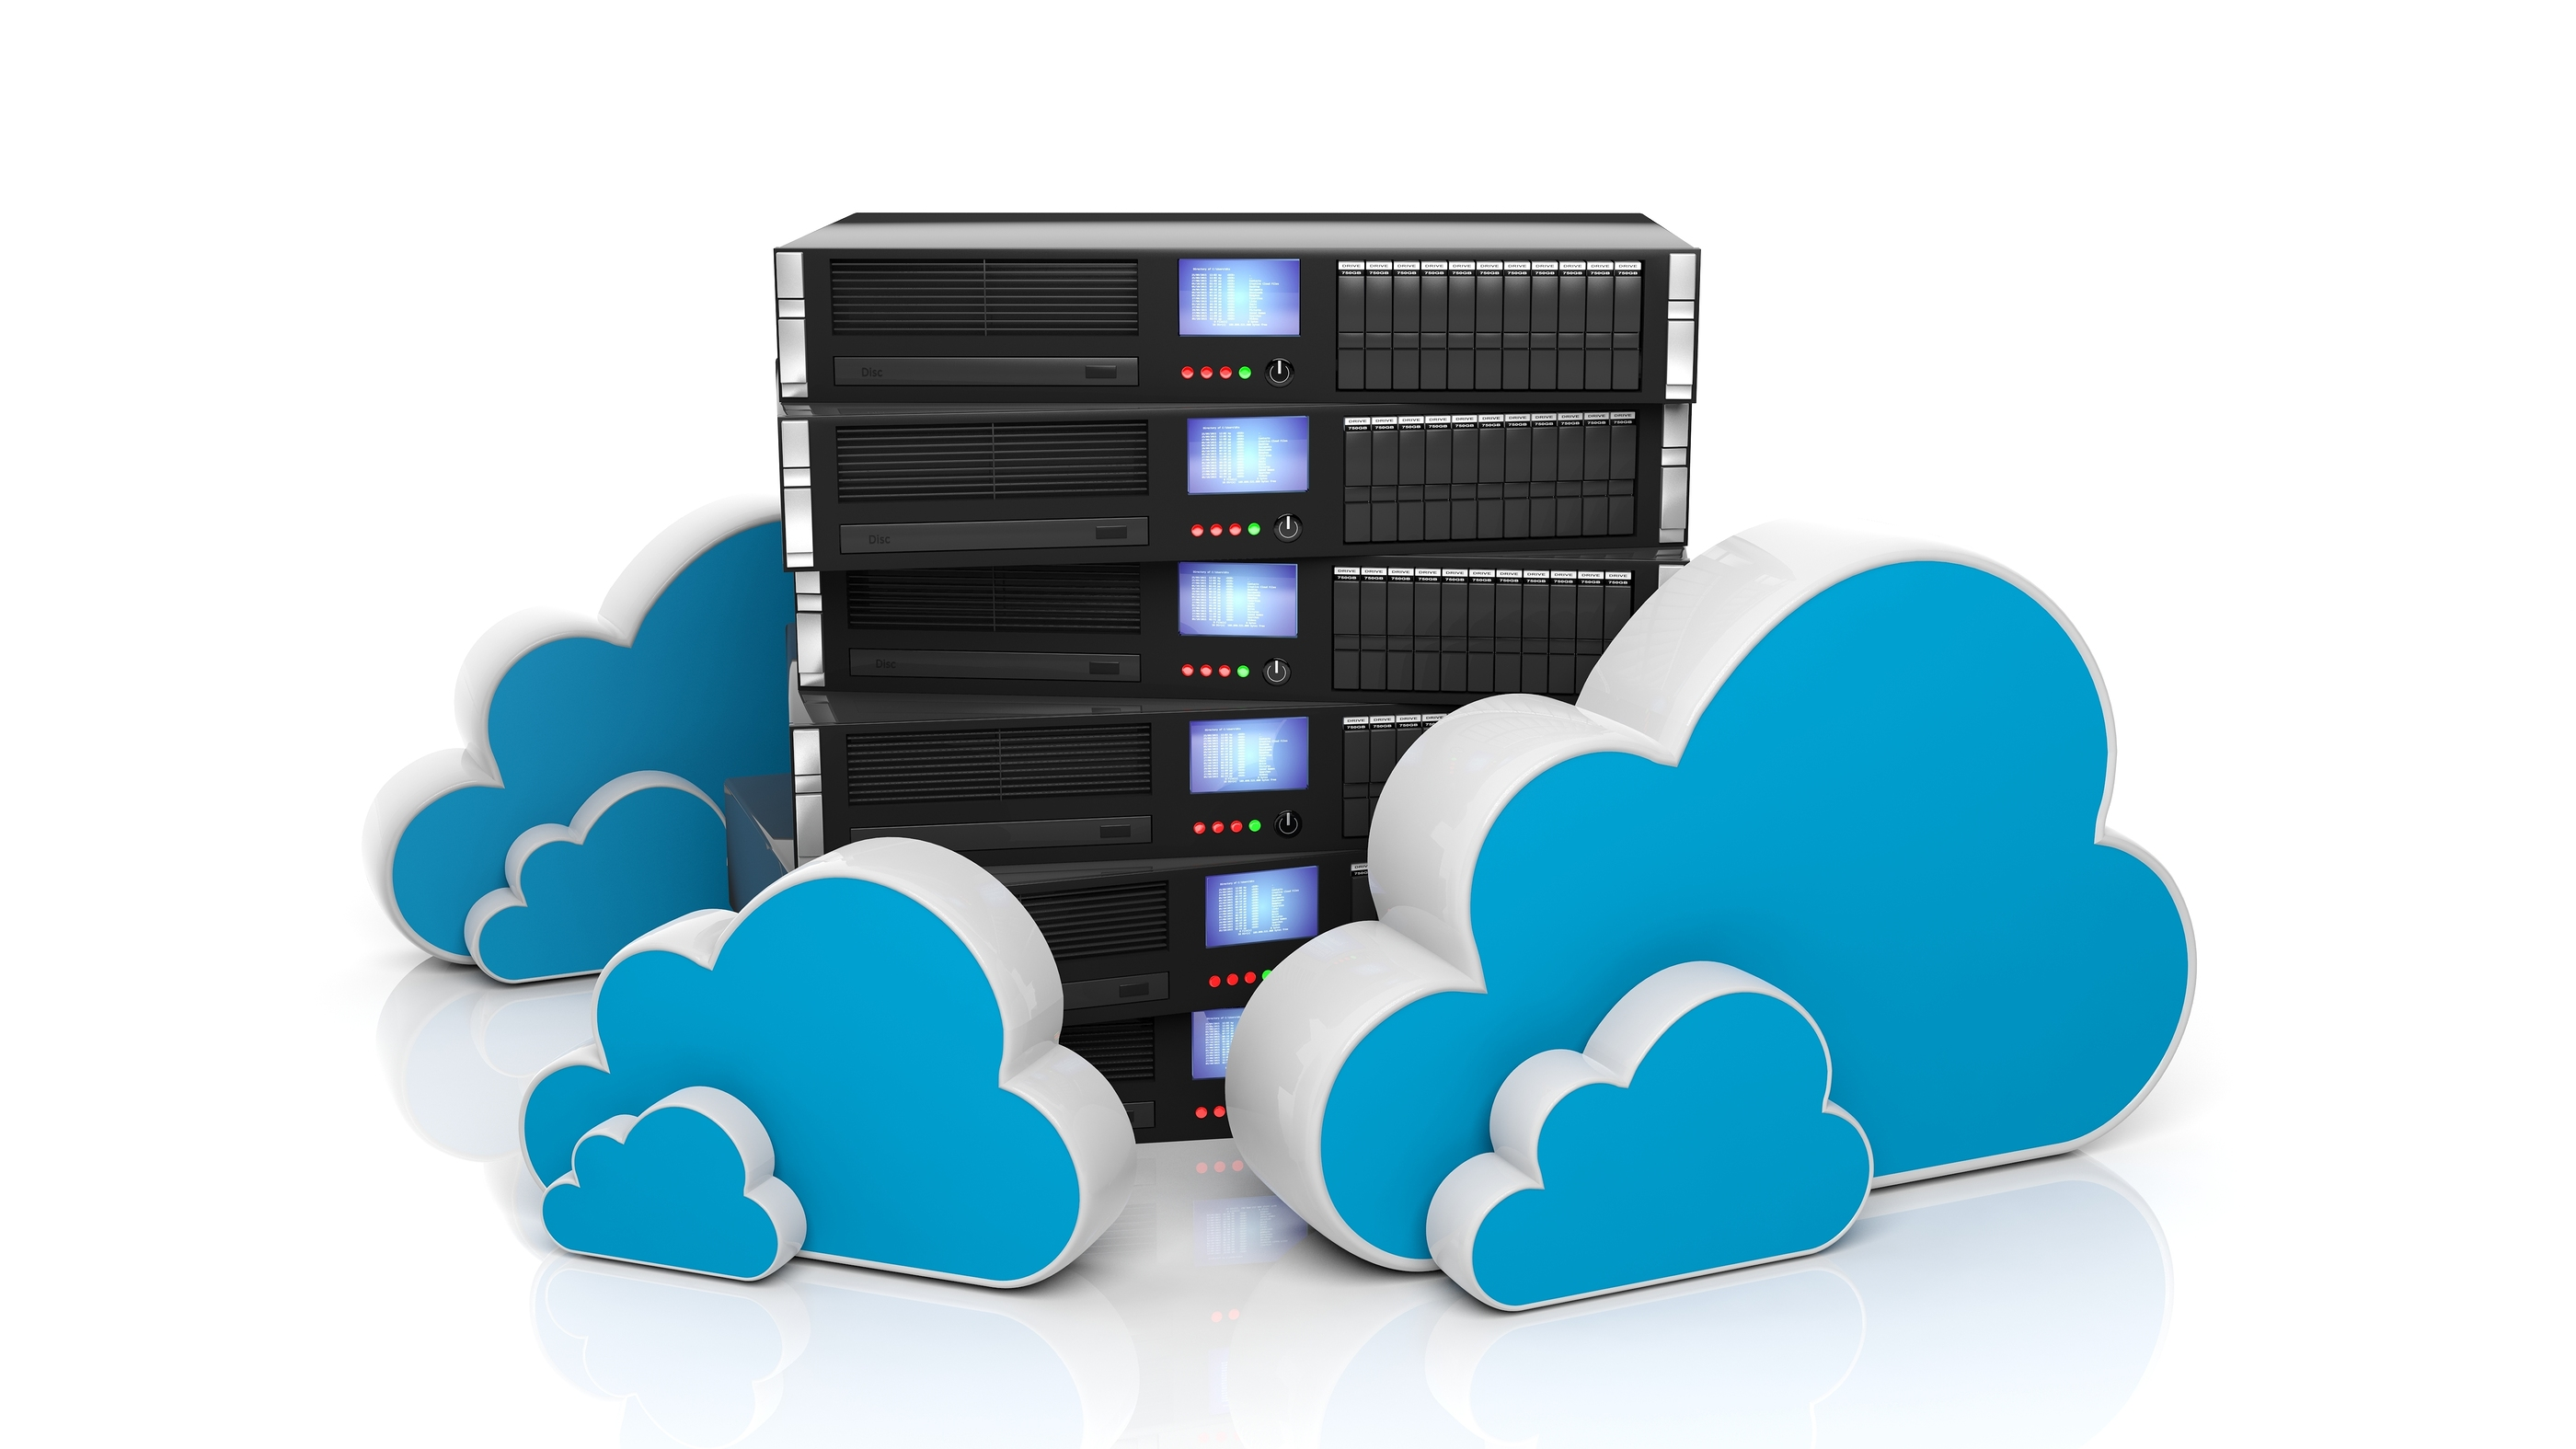 Server Rack and Cloud Services Image - Migrate On Premise Microsoft SharePoint to Office365, let go of servers